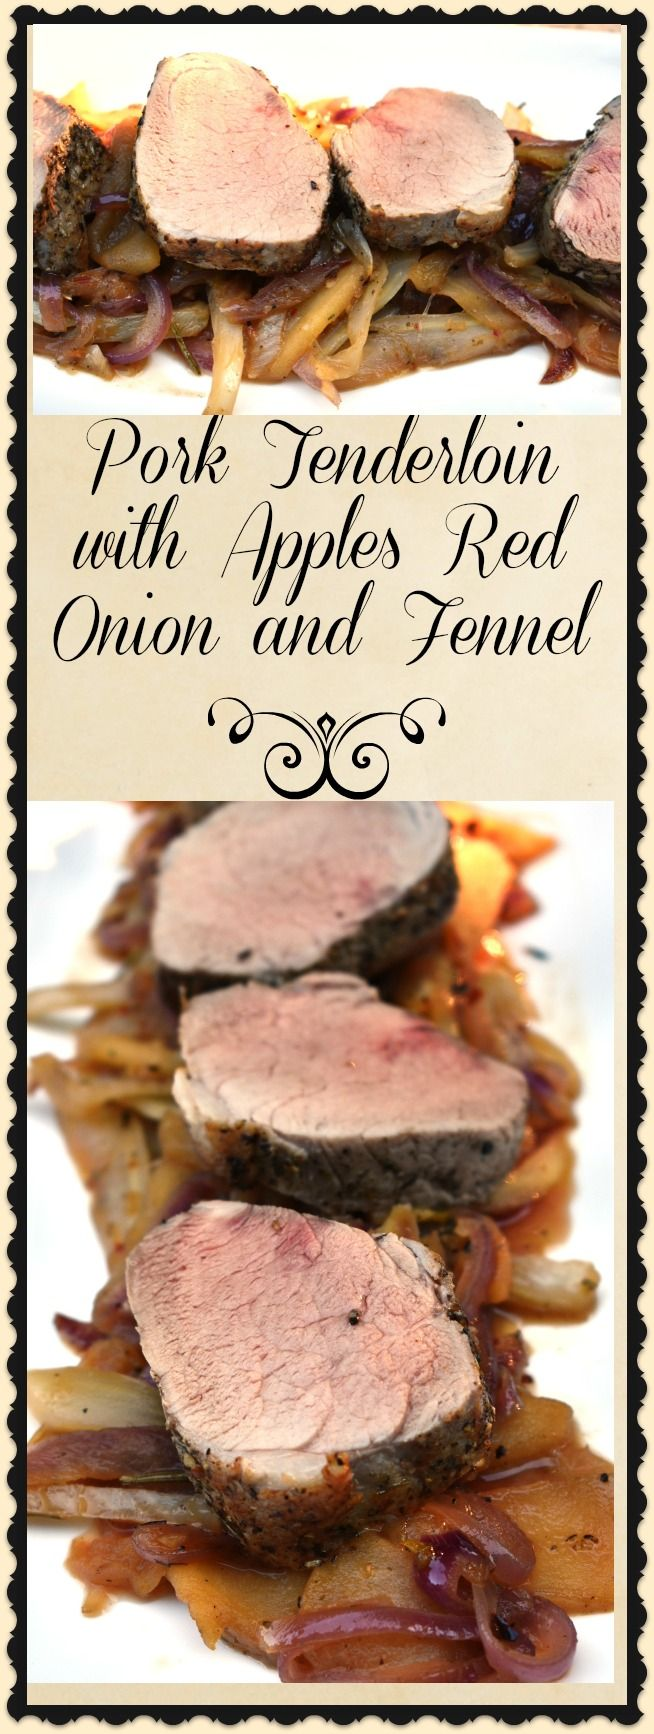 Pork Tenderloin with Apples Red Onion and Fennel is an easy flavorful dish that is the perfect weeknight dinner.  Pork tenderloin doesn't have much flavor on its own, but the sweet apple and the savory fennel are a perfect combination to highlight the pork's subtle flavors.